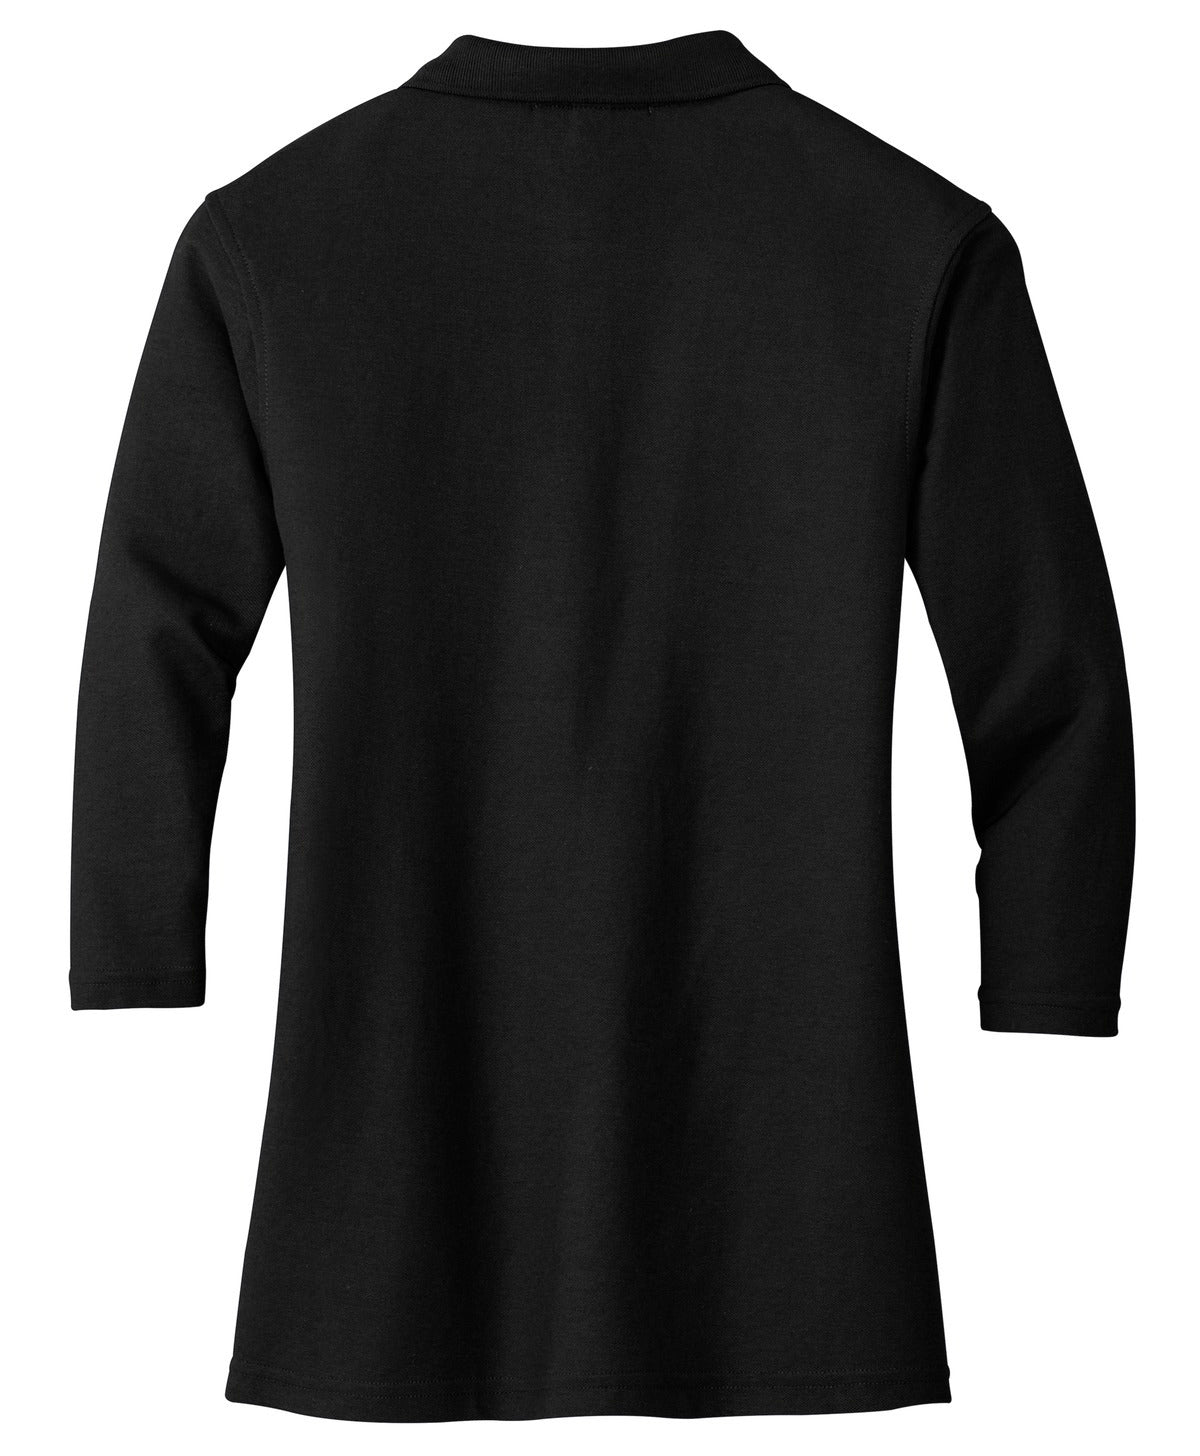 Mafoose Women's Silk Touch ¾ Sleeve Polo Shirt Black-Back